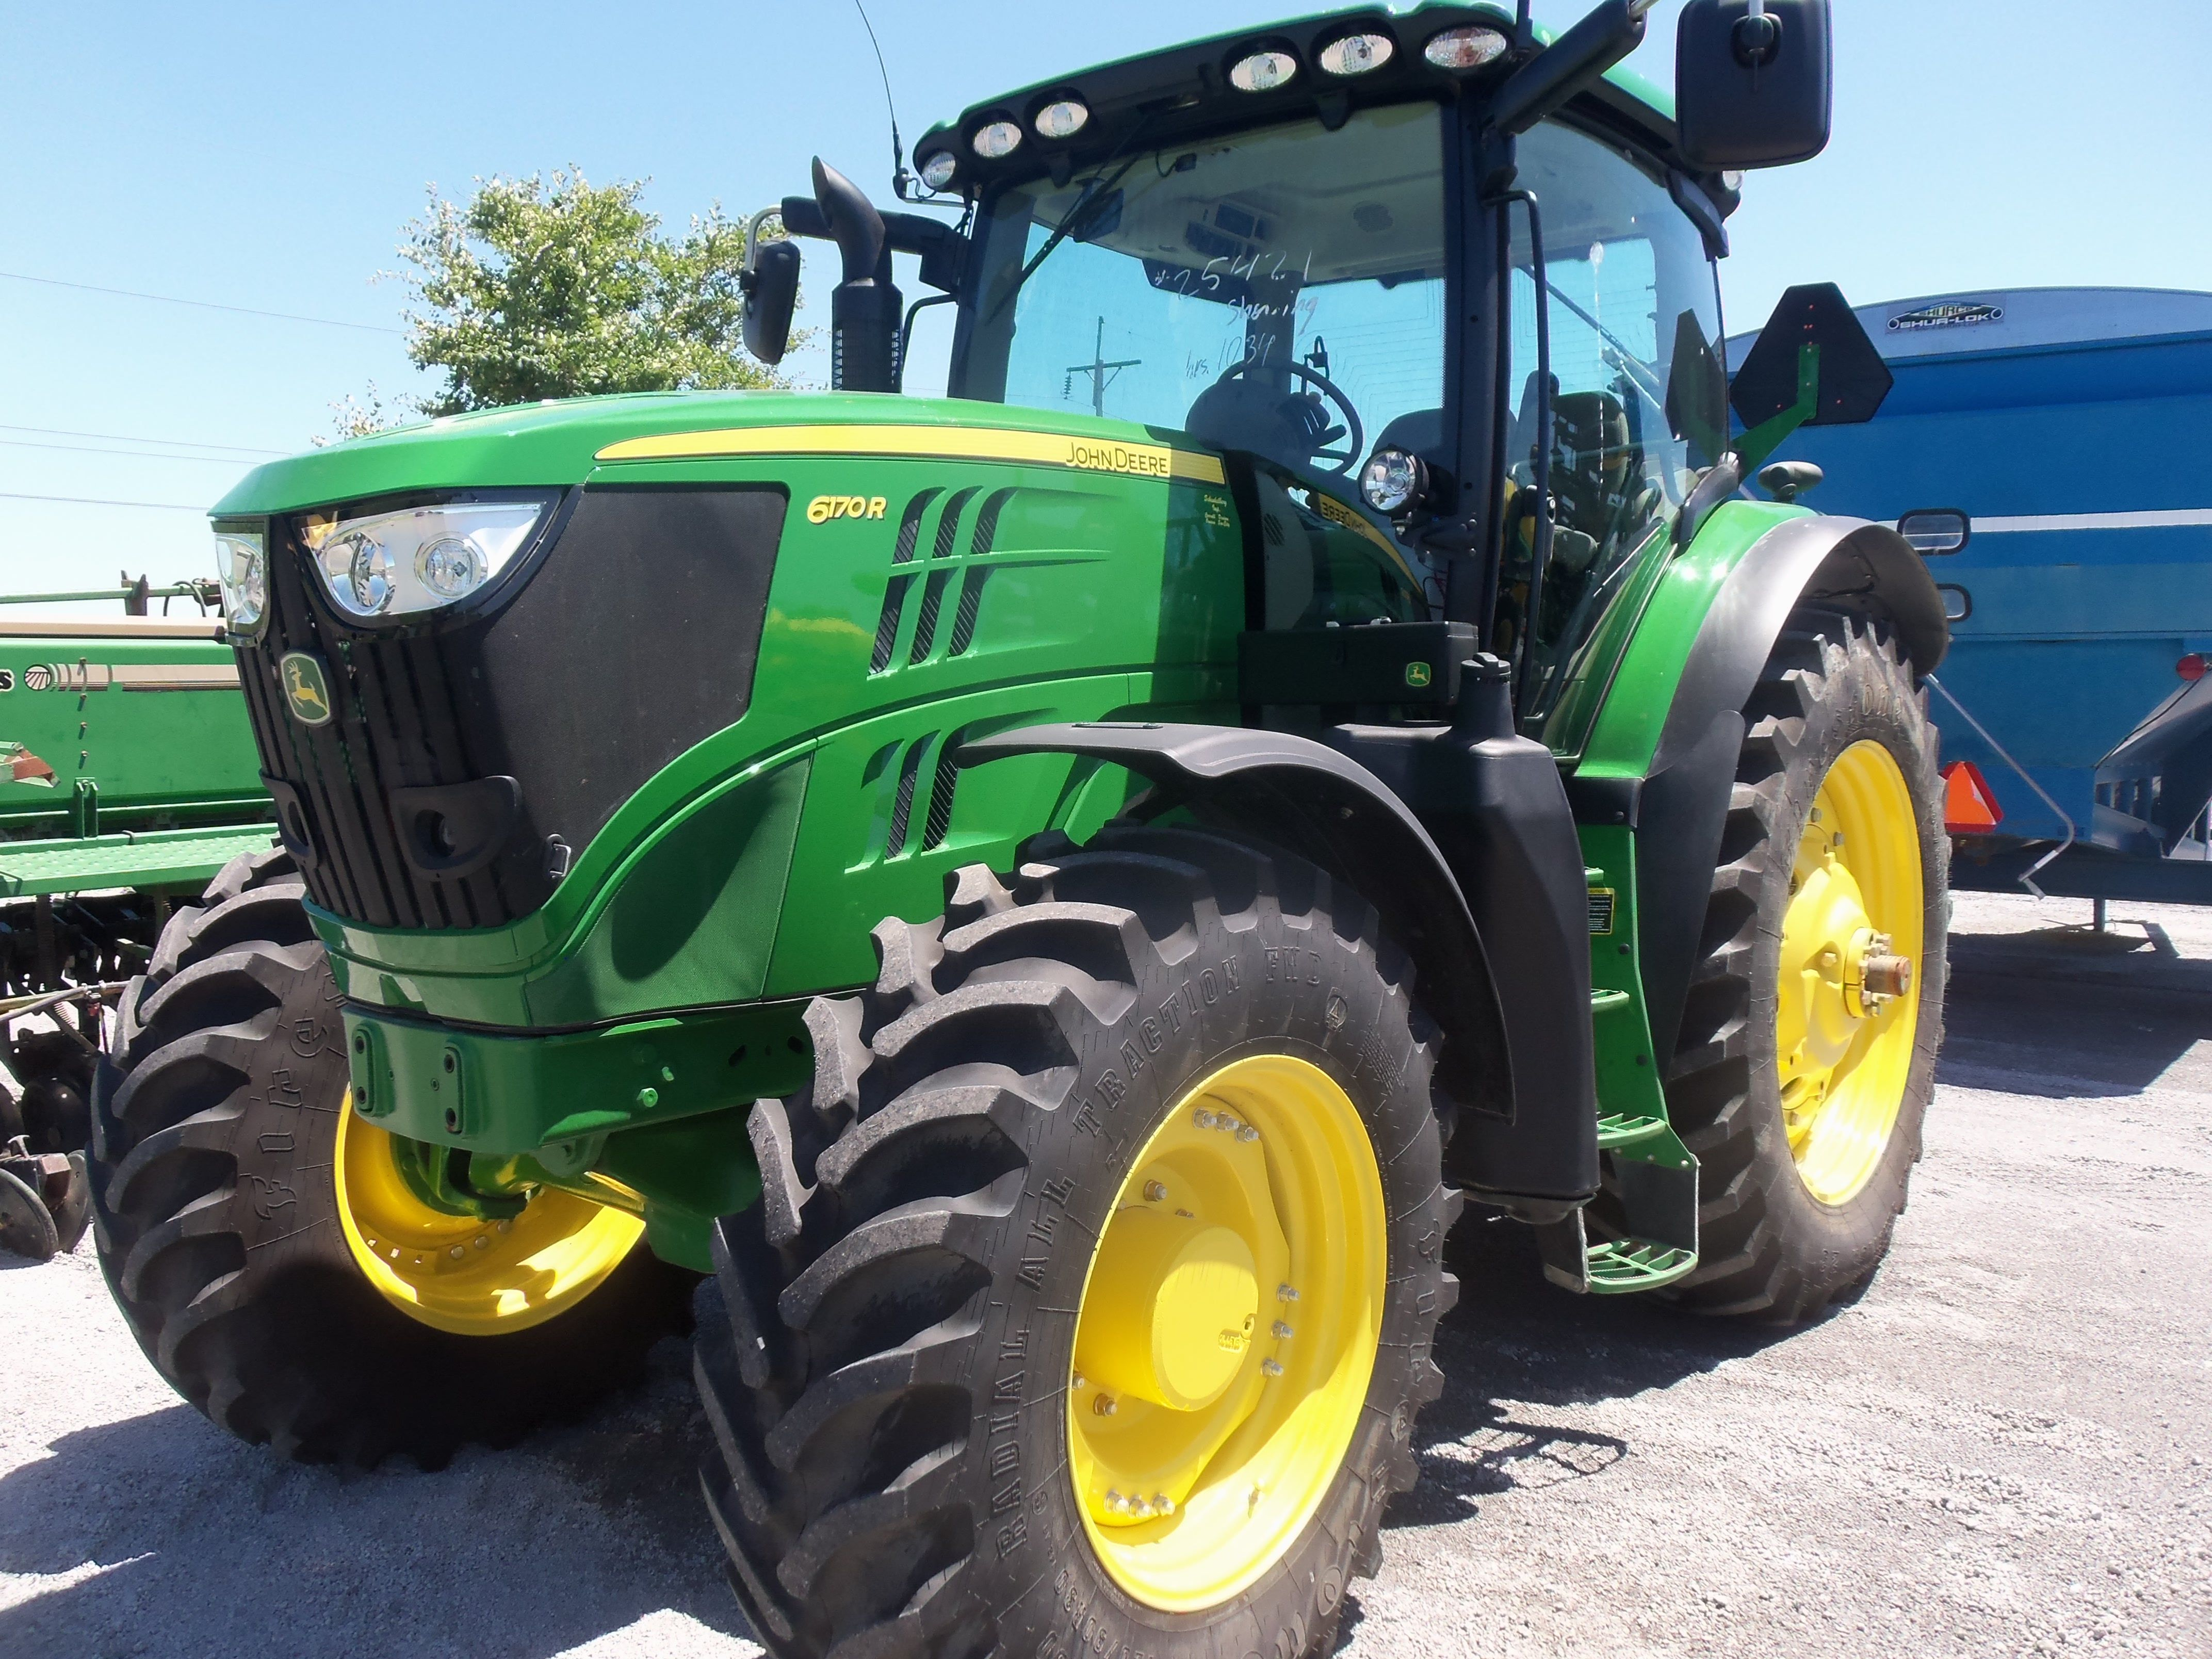 hight resolution of john deere 6170r 187 max 170 engine 140 pto hp from a turbocharged 549 cid diesel 15 500 lbs 58 gallon fuel tank 119 inch wheelbase